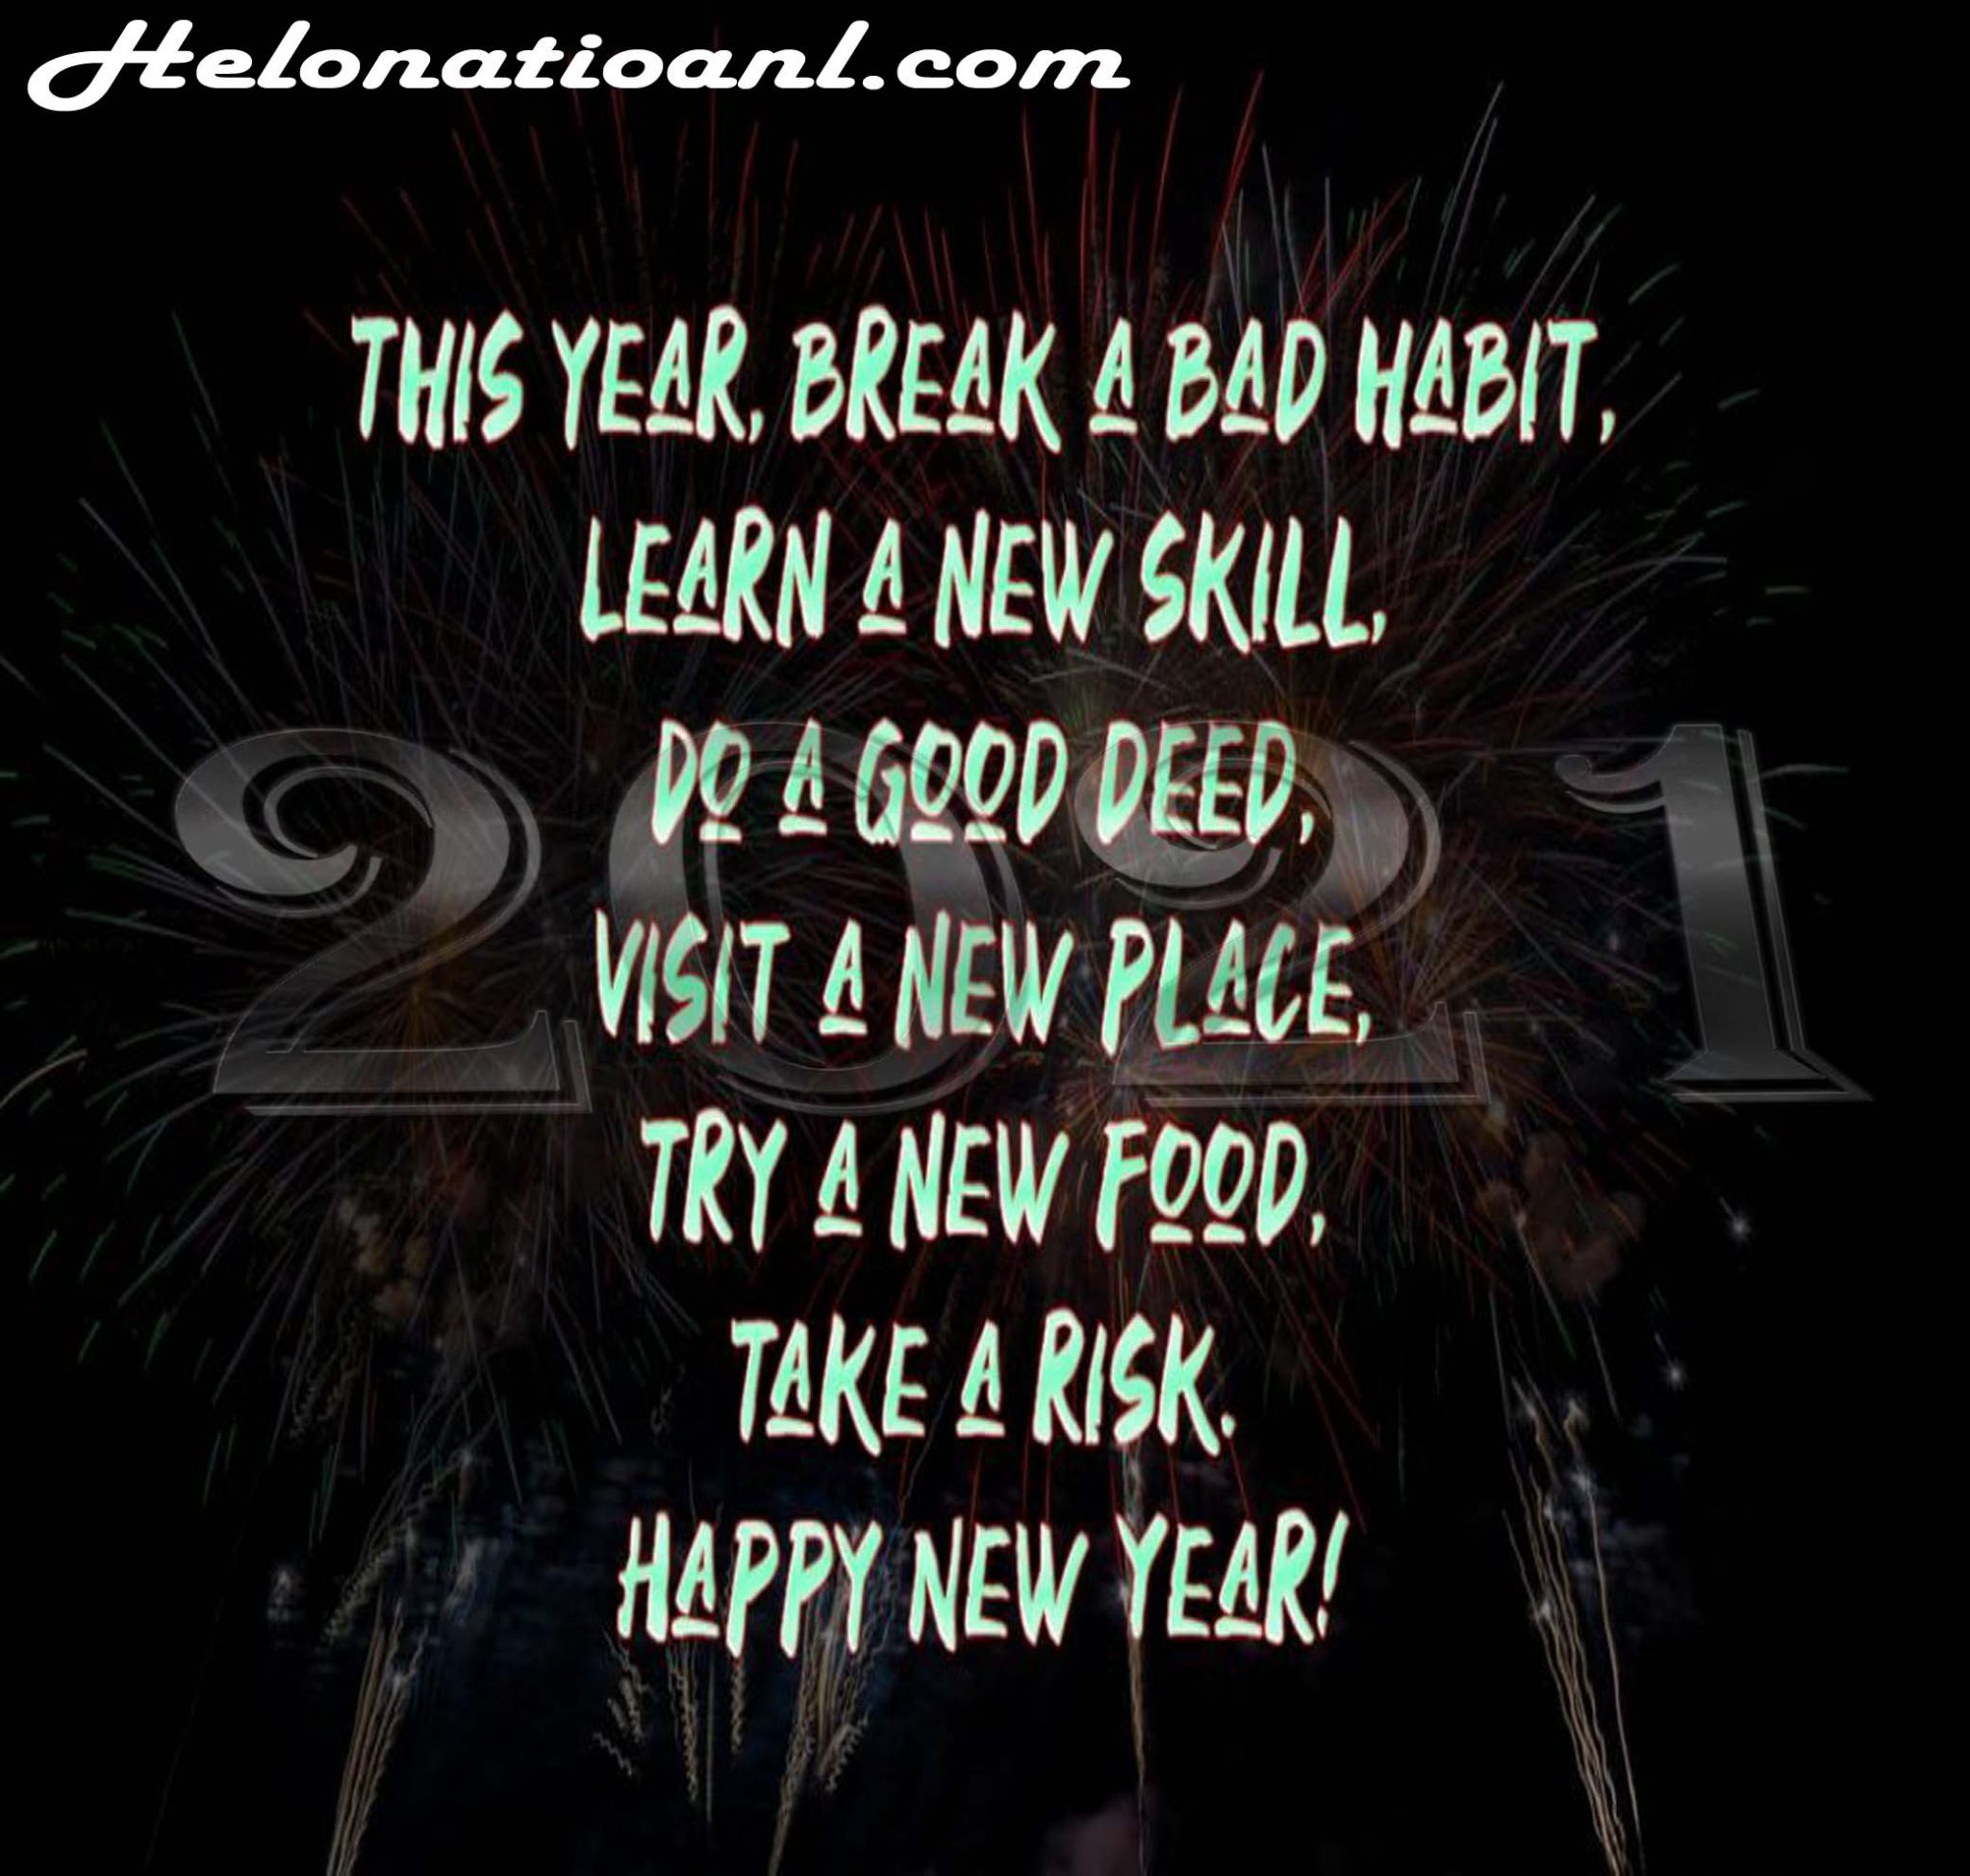 hny 2021 new year messages